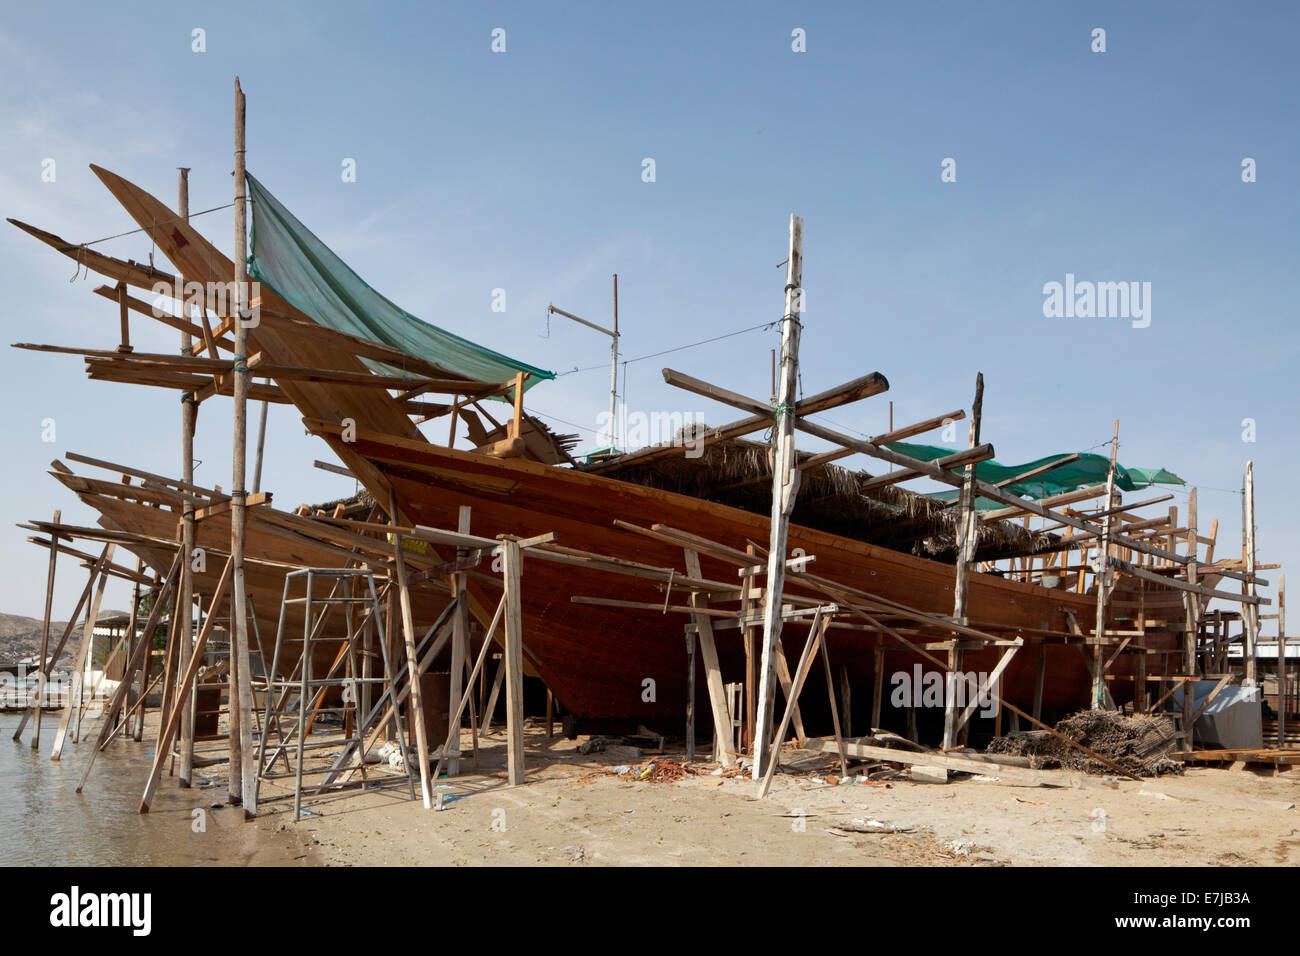 Shipyard with an old dhow-ship being repaired, Sur, Ash Sharqiyah province, Sultanate of Oman, Arabian Peninsula - Stock Image